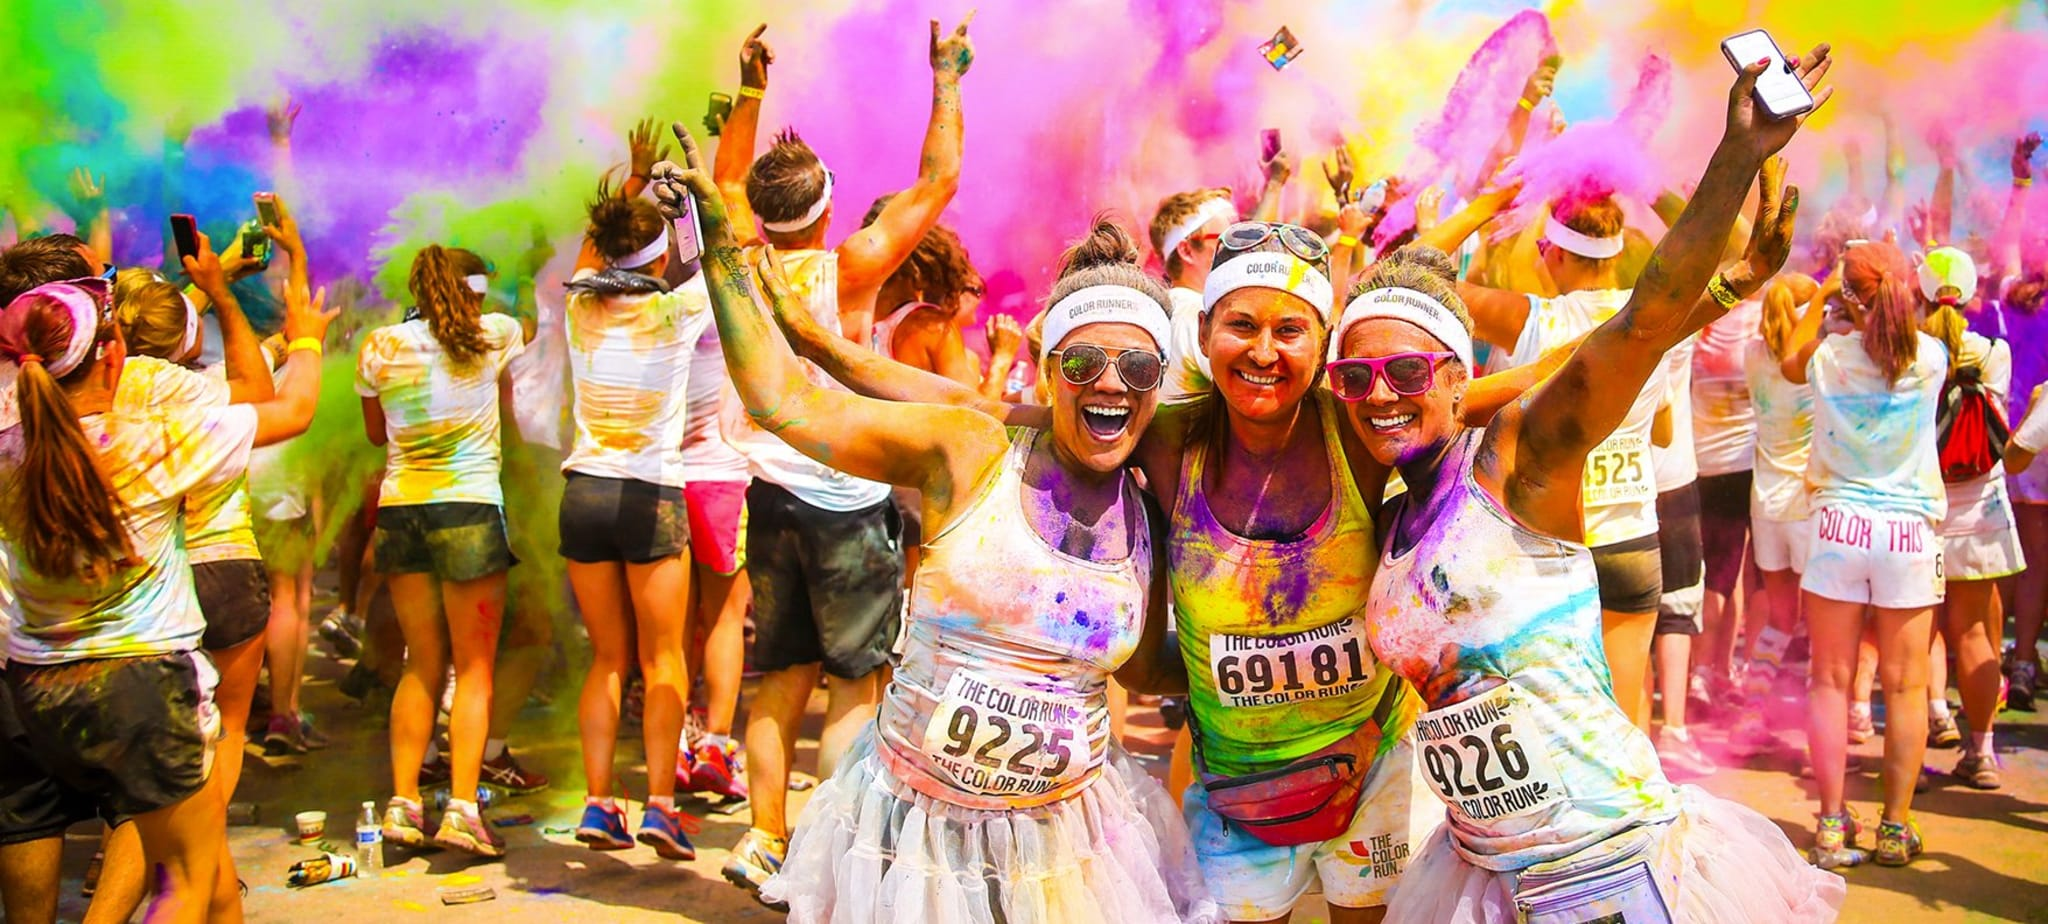 Color Run Grand Rapids 2020.The Color Run Chicago 2018 5k In Chicago Il Let S Do This